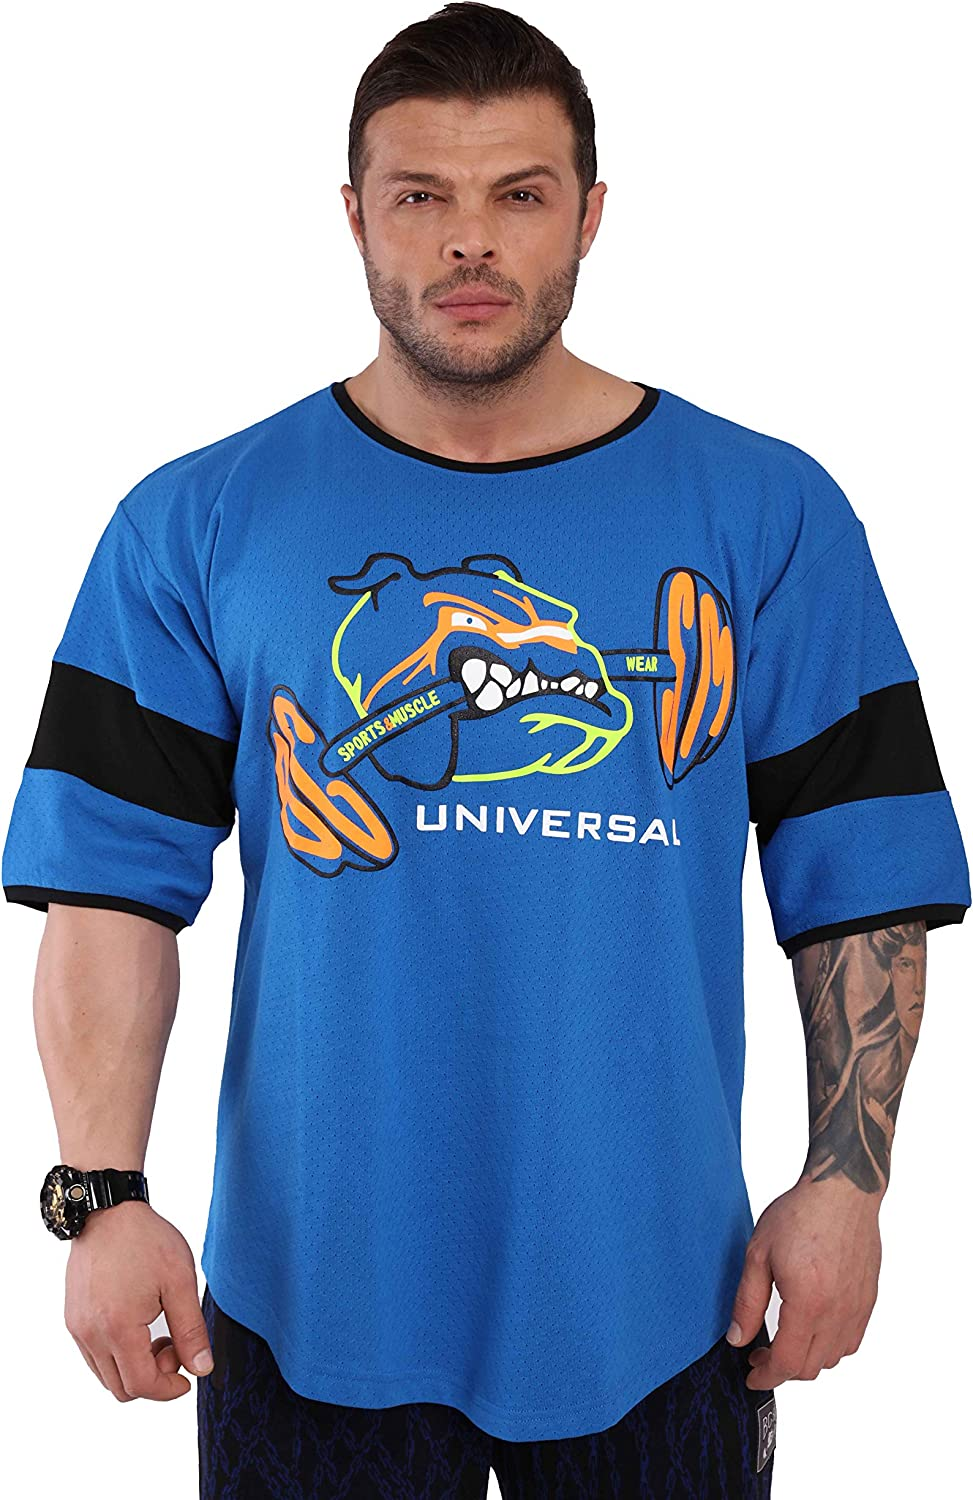 Men's Workout T-Shirt Oversize Cotton Top Sleeve Short Don't miss At the price of surprise the campaign Mesh